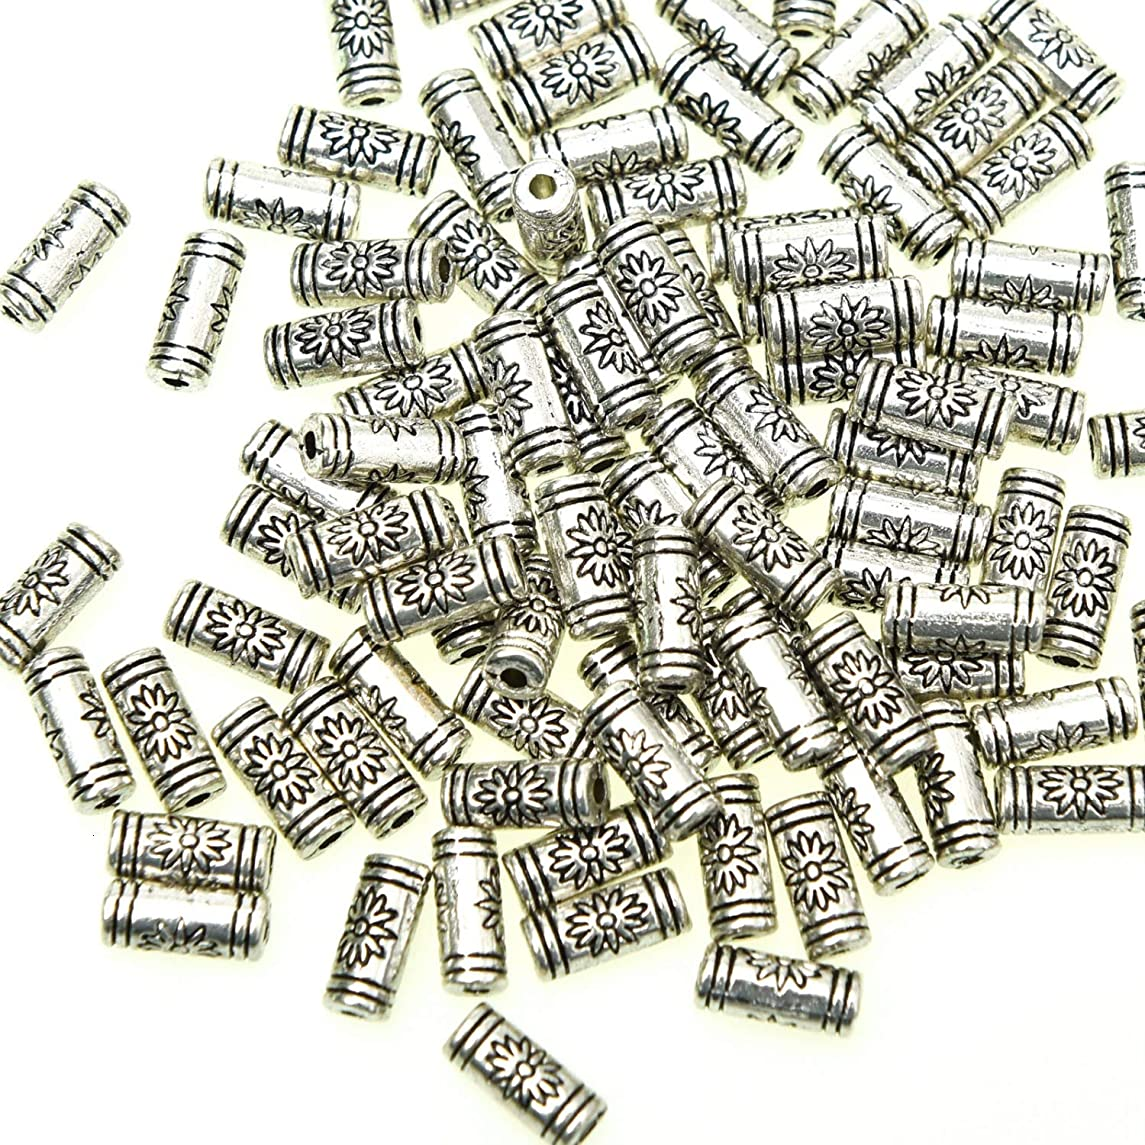 Monrocco 100Pcs Antique Silver Alloy Tube Beads Spacer Beads Charms Tibetan Style Beads Charms - Lead Free & Nickel Free